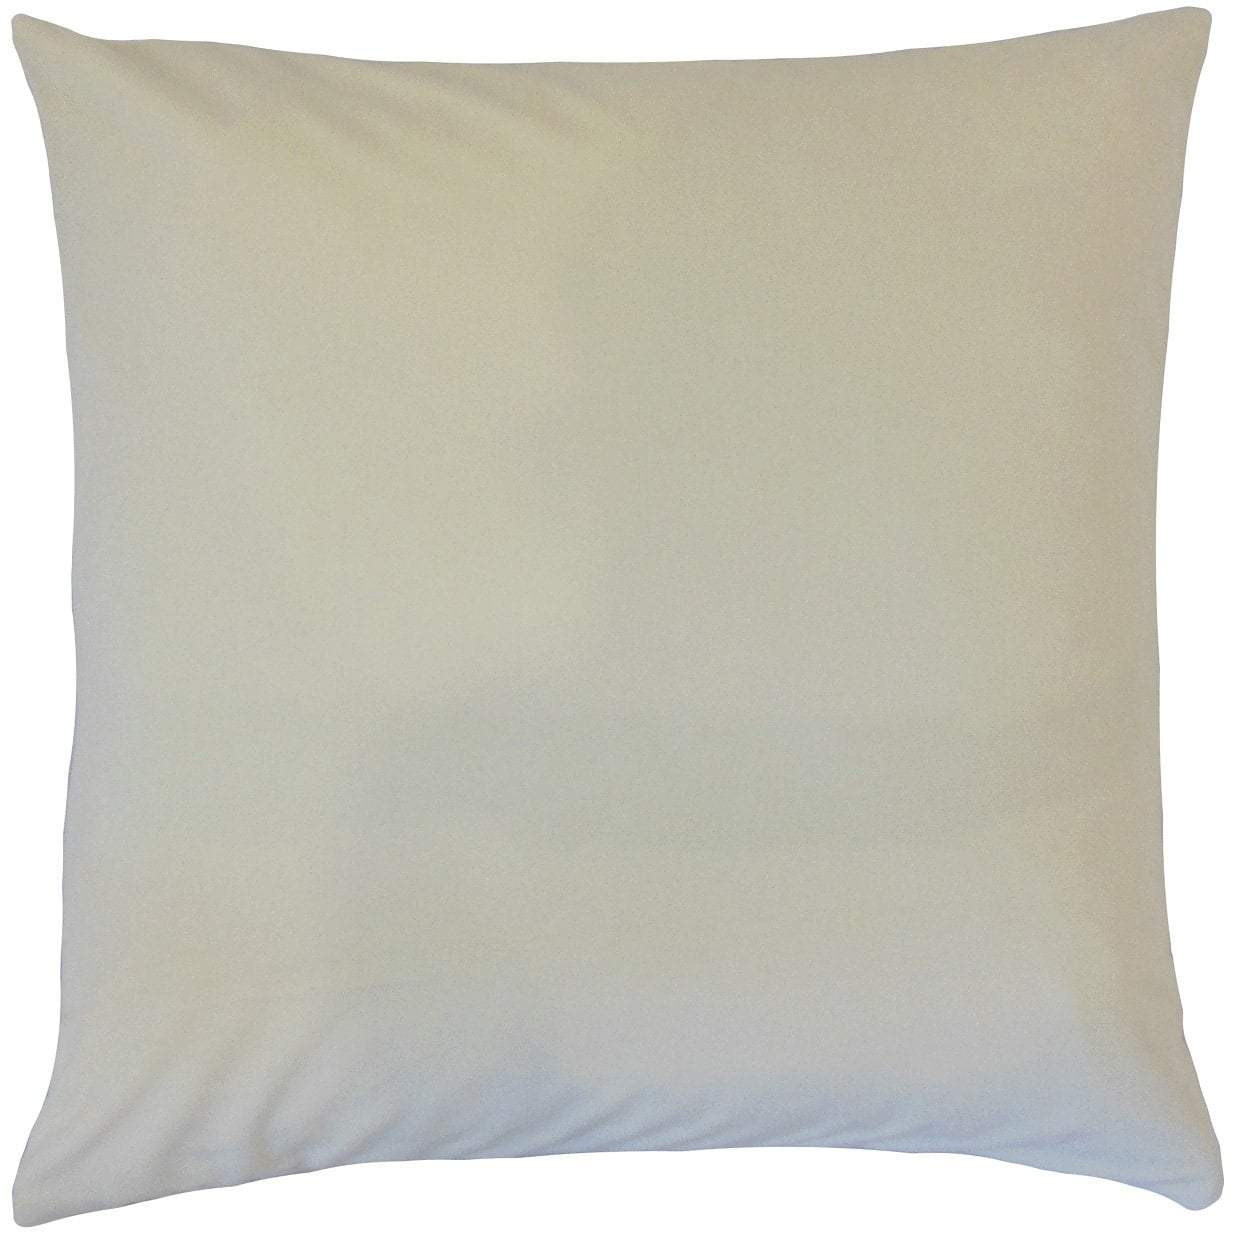 Gonzales Throw Pillow Cover